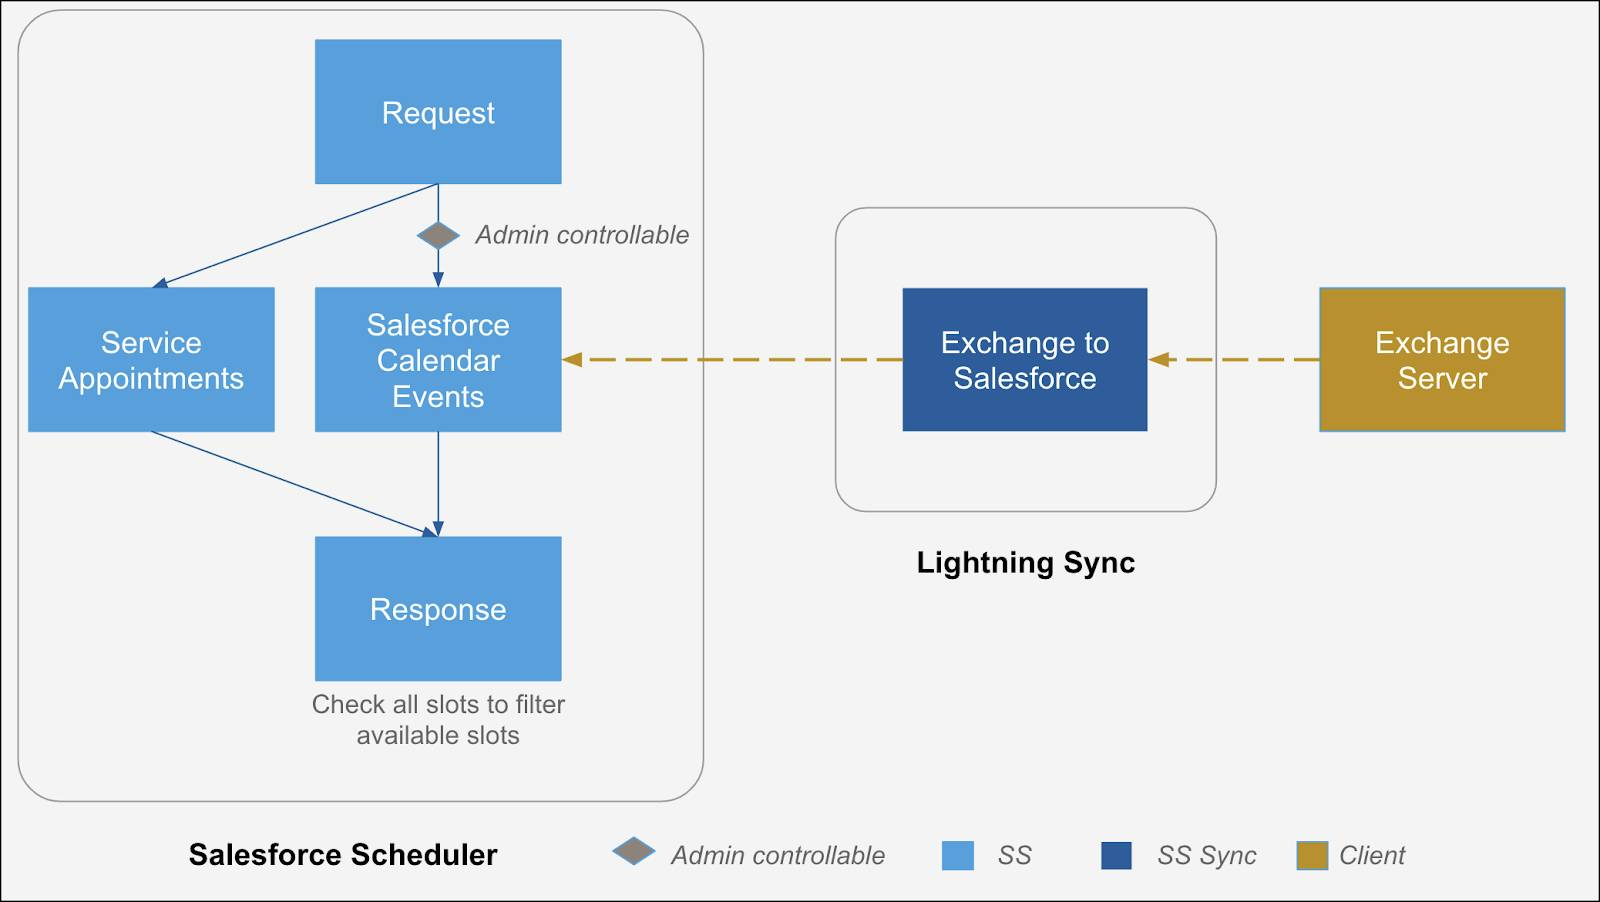 An illustration of the flow of data from an external mail server to Salesforce Scheduler via Lightning Sync.